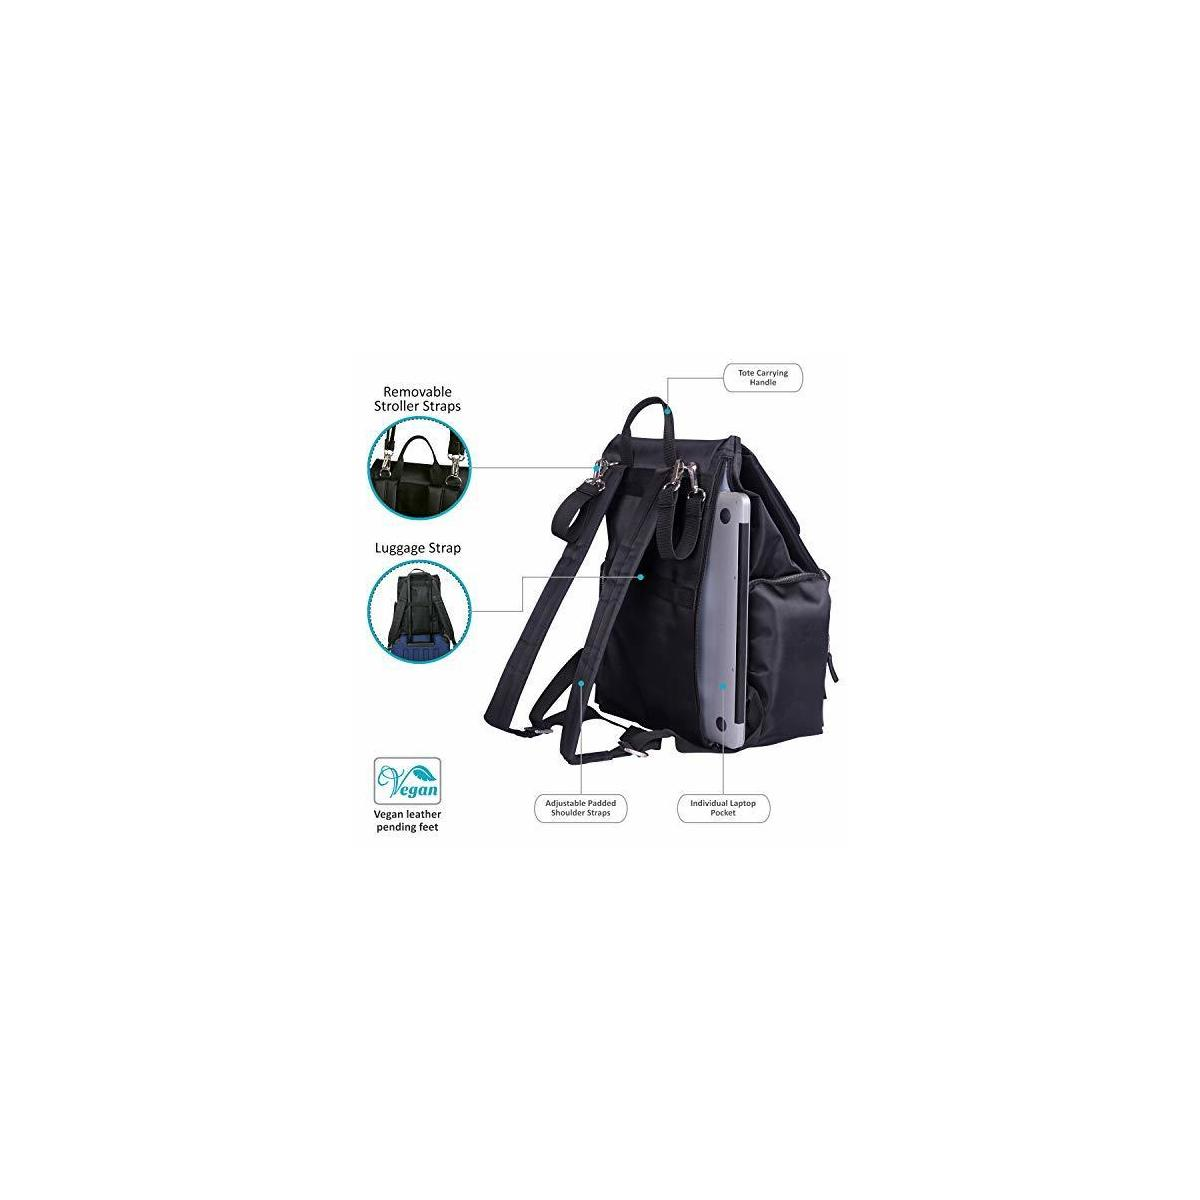 Diaper Bag Backpack Multi-function Travel Back Pack Maternity Nappy Bags for Baby Care,Large Capacity, Waterproof and Stylish with Changing Clutch and Stroller Hooks